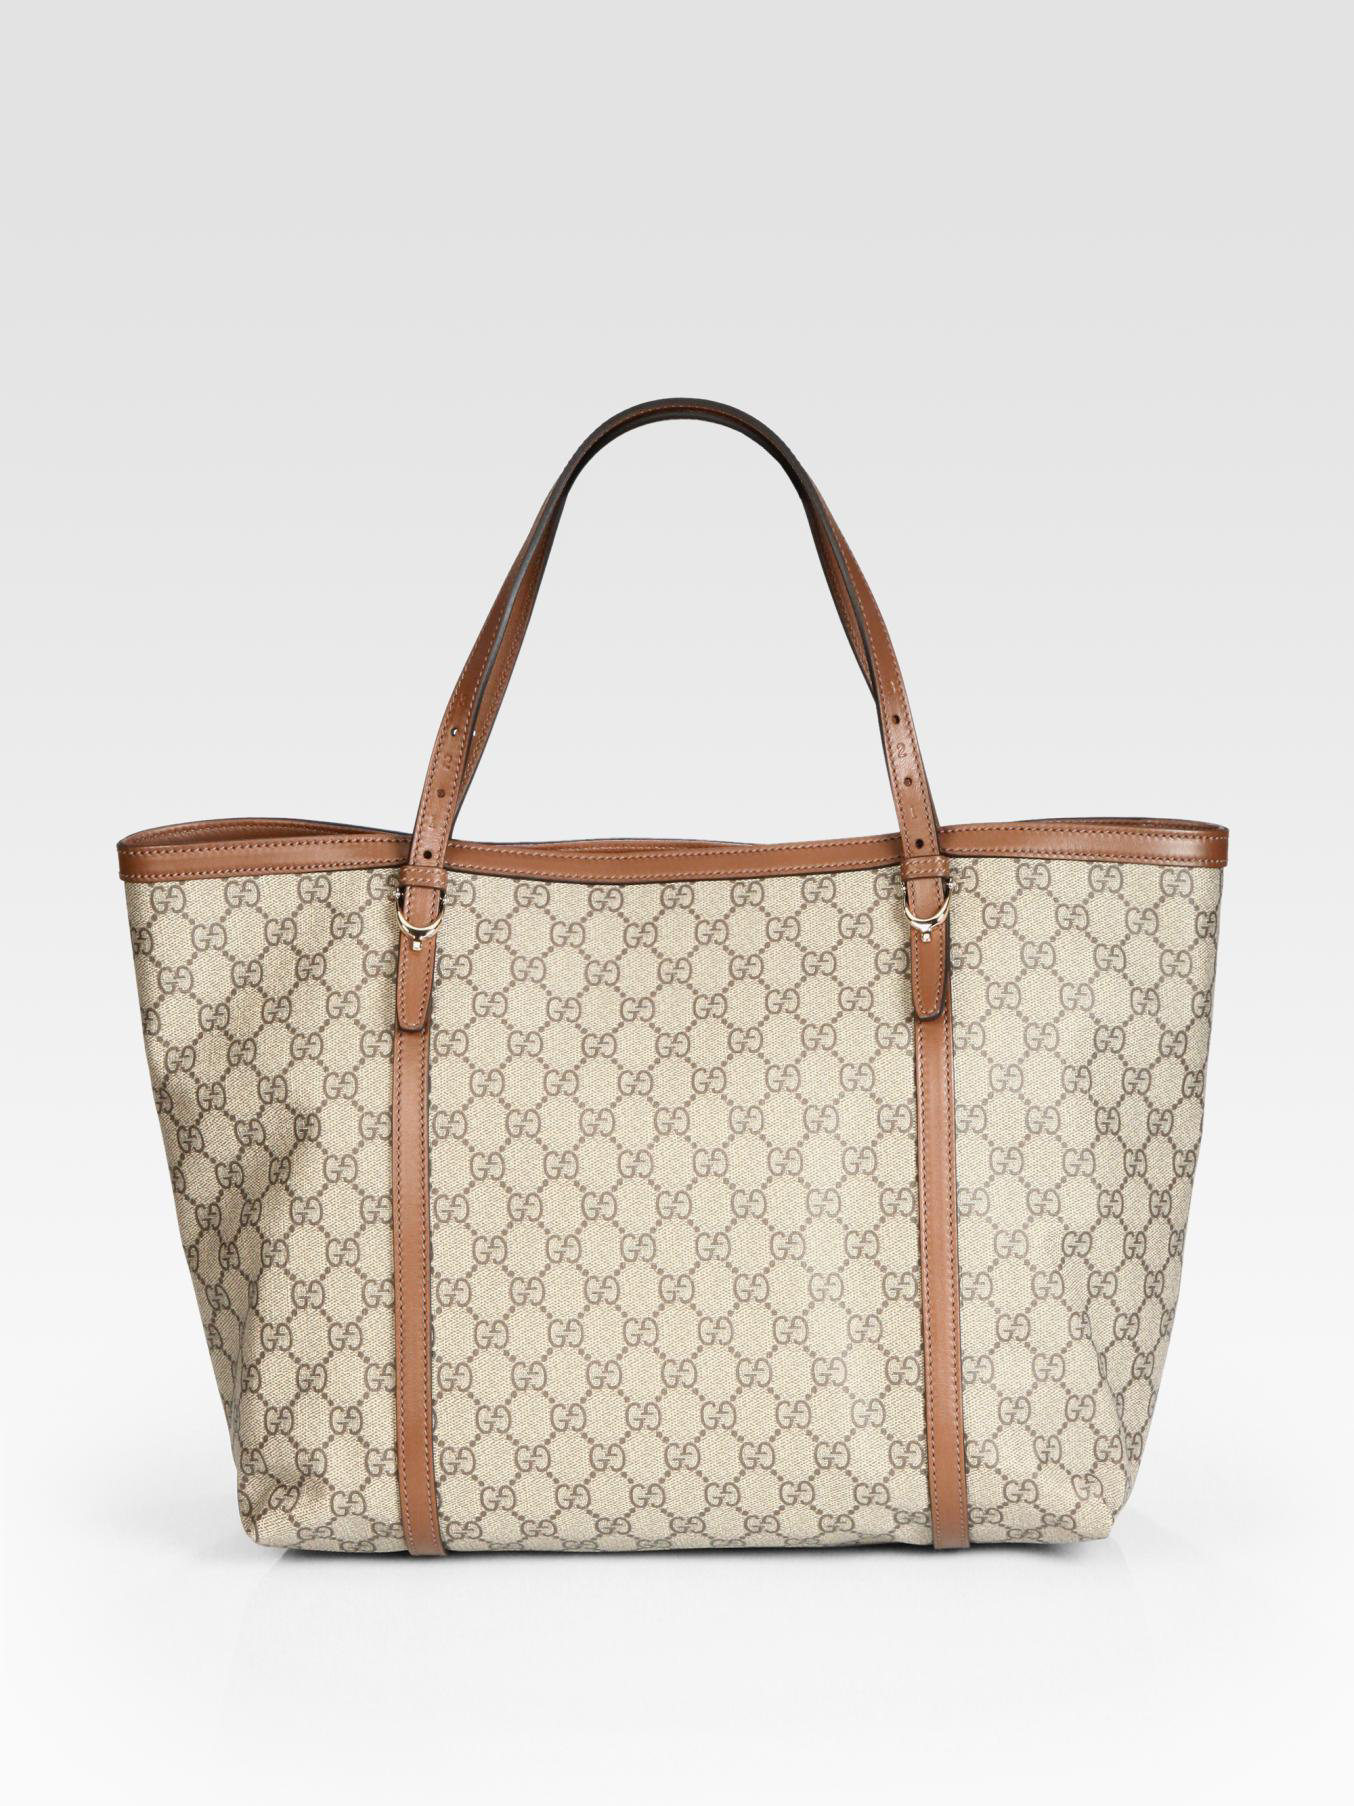 04d1c328218 Gucci Nice Gg Supreme Canvas Tote in Brown - Lyst